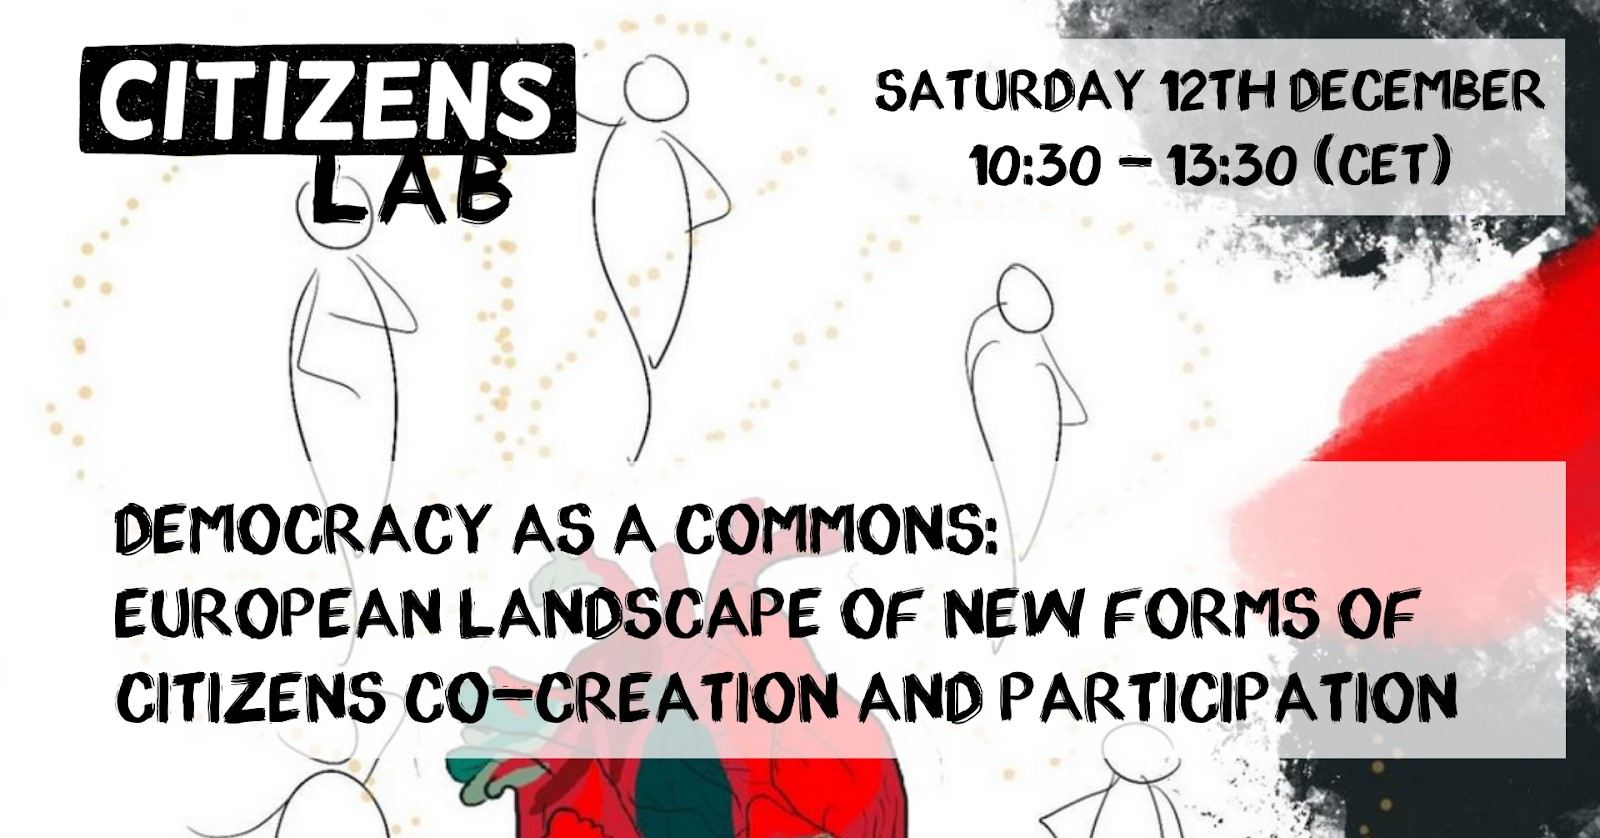 [Online] Democracy as a commons: European landscape of new forms of citizens' co-creation and participation